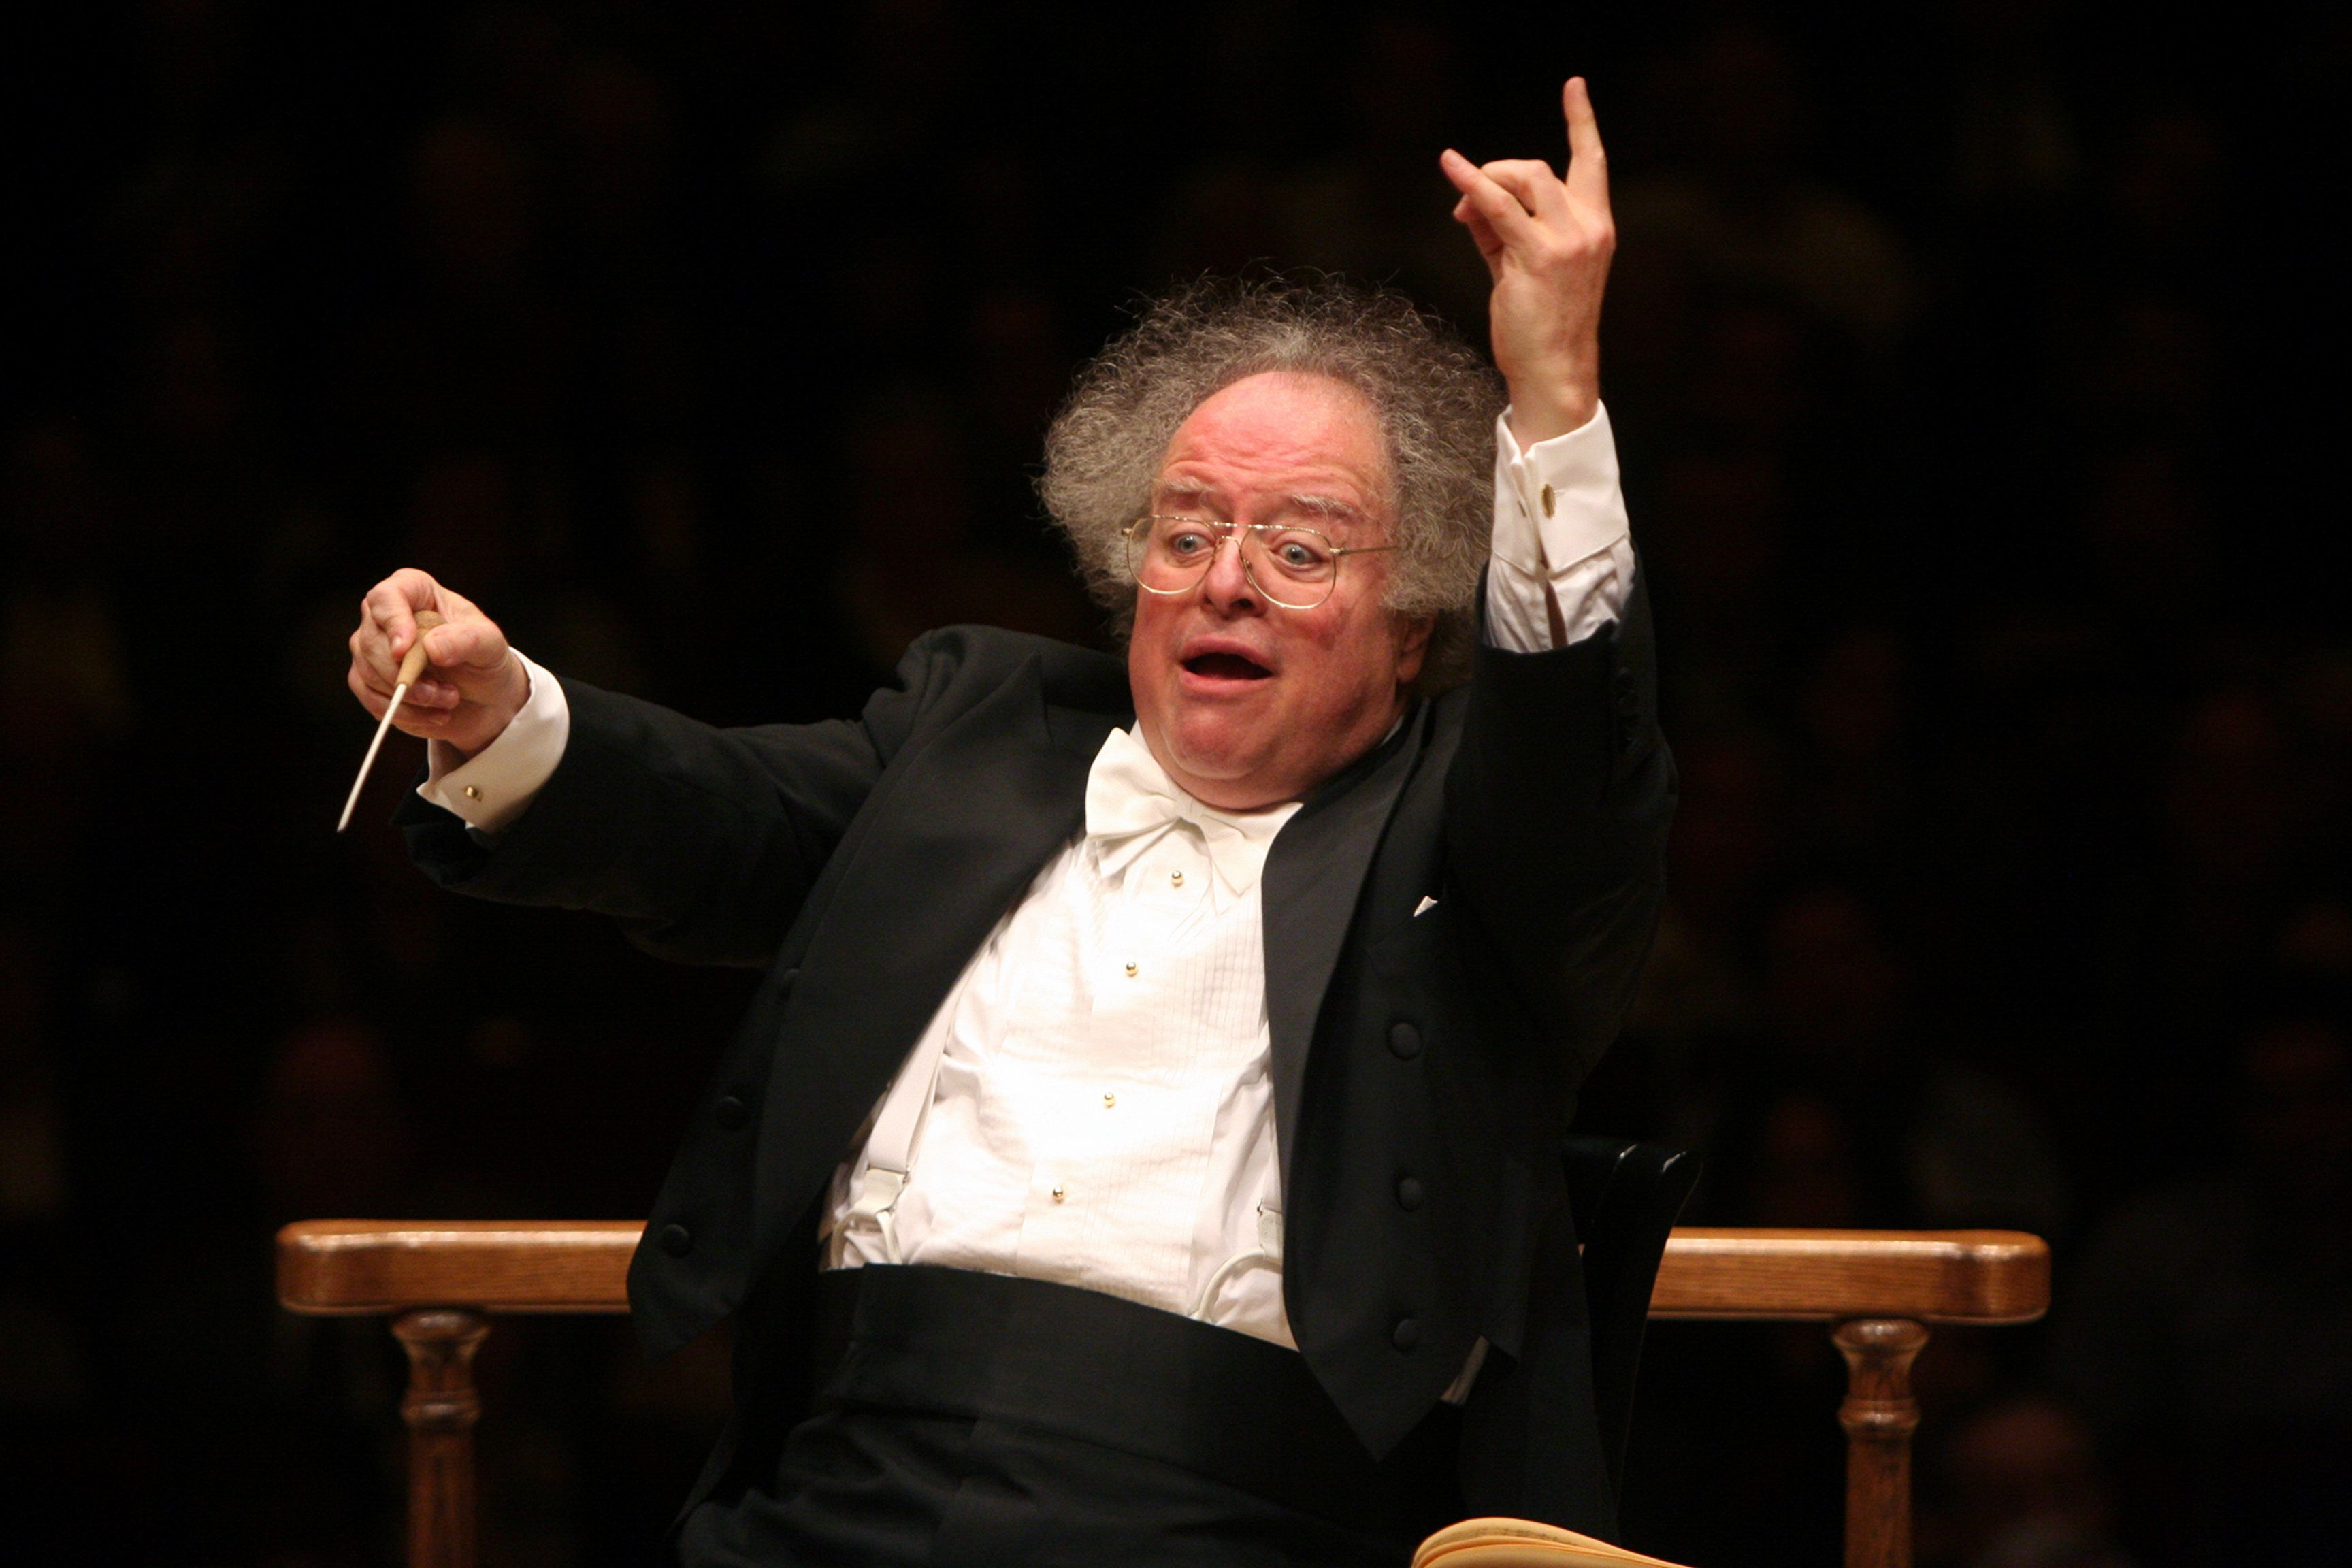 James Levine leading the Boston Symphony Orchestra at Carnegie Hall on Monday night, February 1, 2010.This image;James Levine leading the Boston Symphony Orchestra in Ravel's 'Daphnis et Chloe.'(Photo by Hiroyuki Ito/Getty Images)